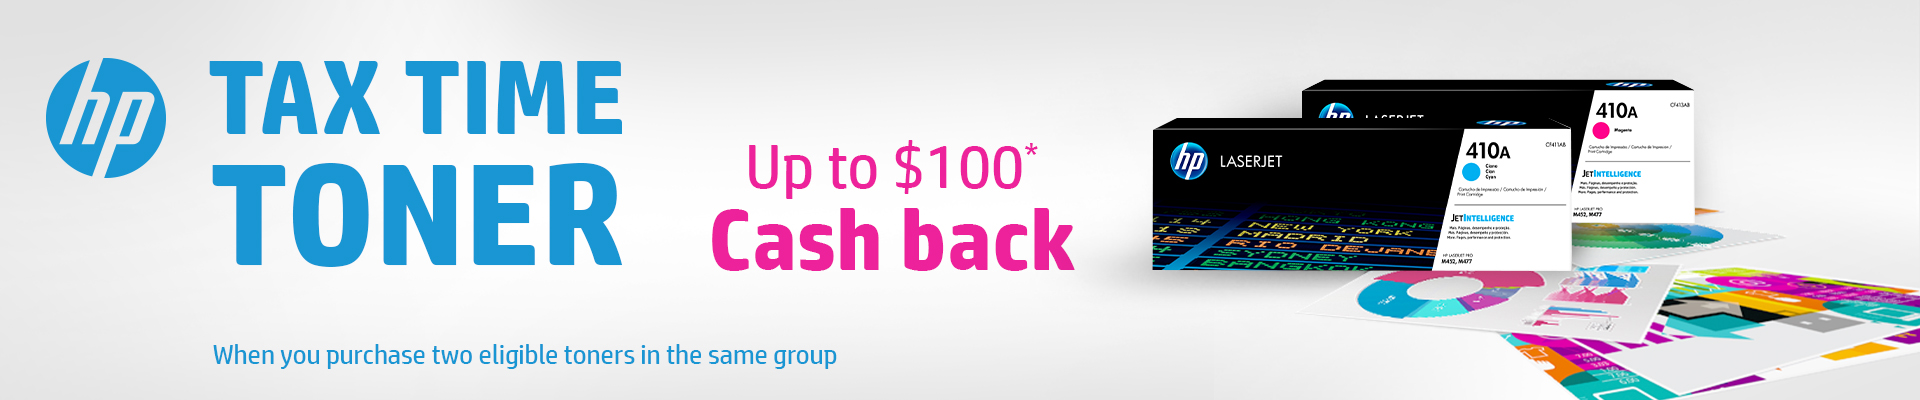 HP Tax Time Toner Cash Back Promotion